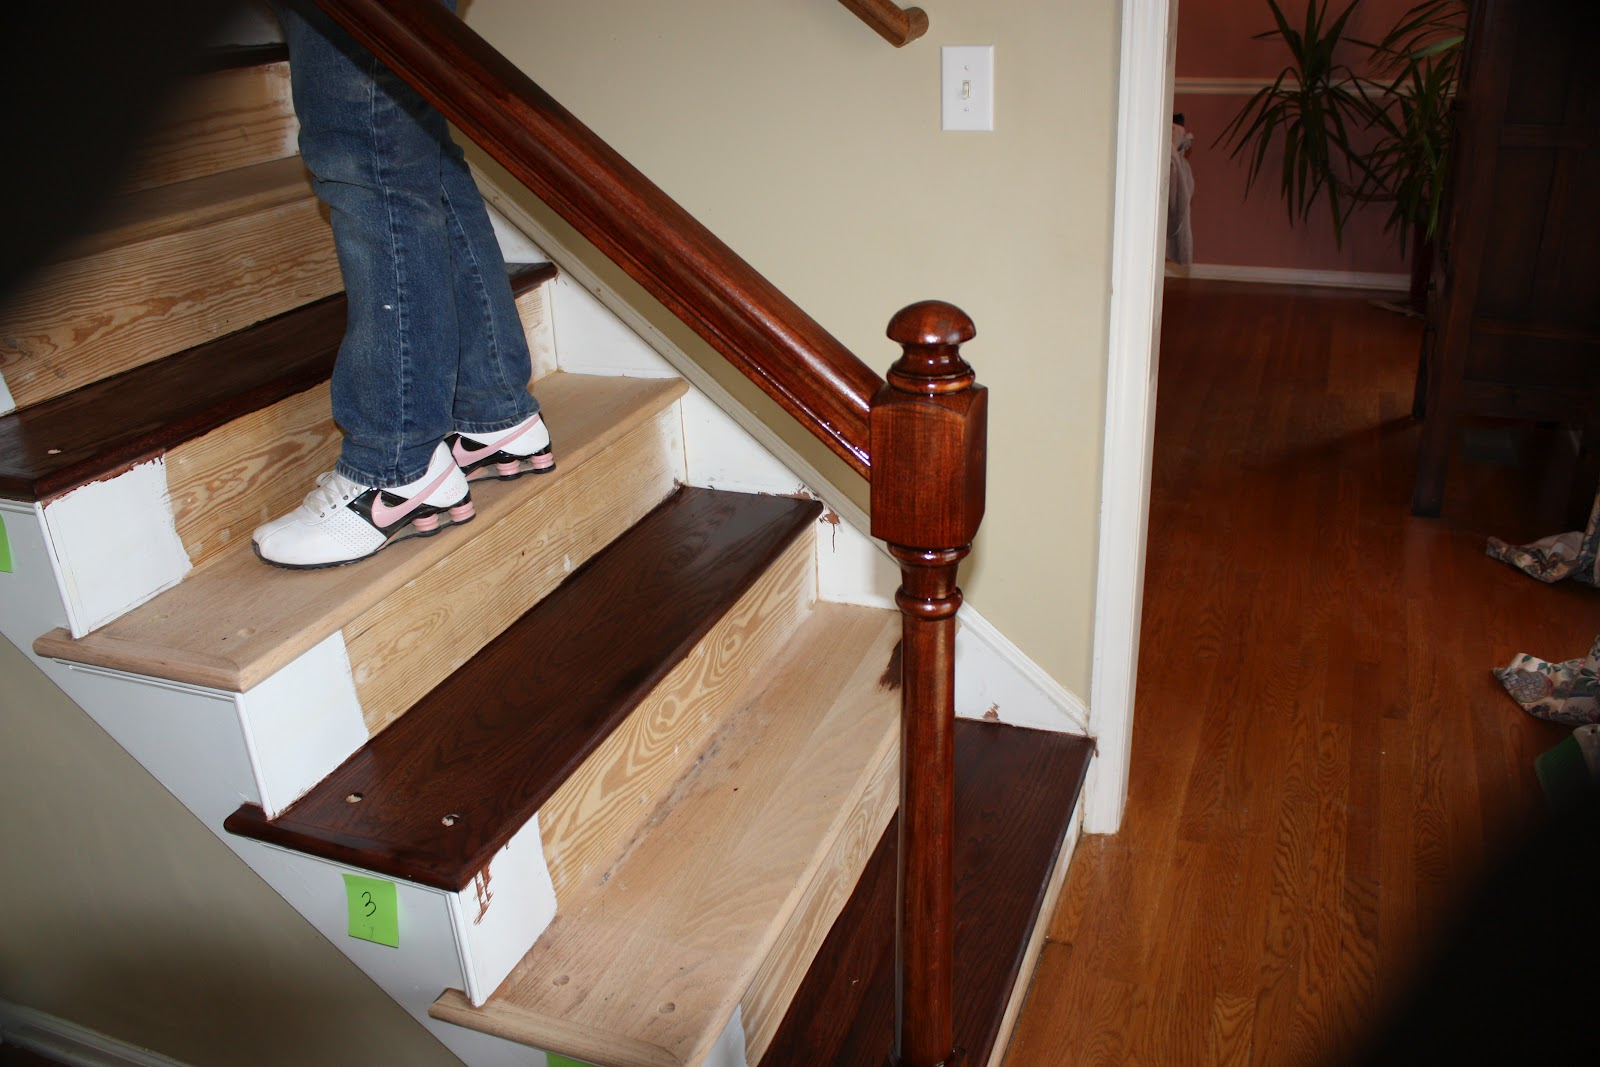 My WH (wonderful Husband) And I Removed All The Brad Nails And Carpet Tack  Strips, Then We Filled All The Nail Holes And Sanded The Stair Treads Down.